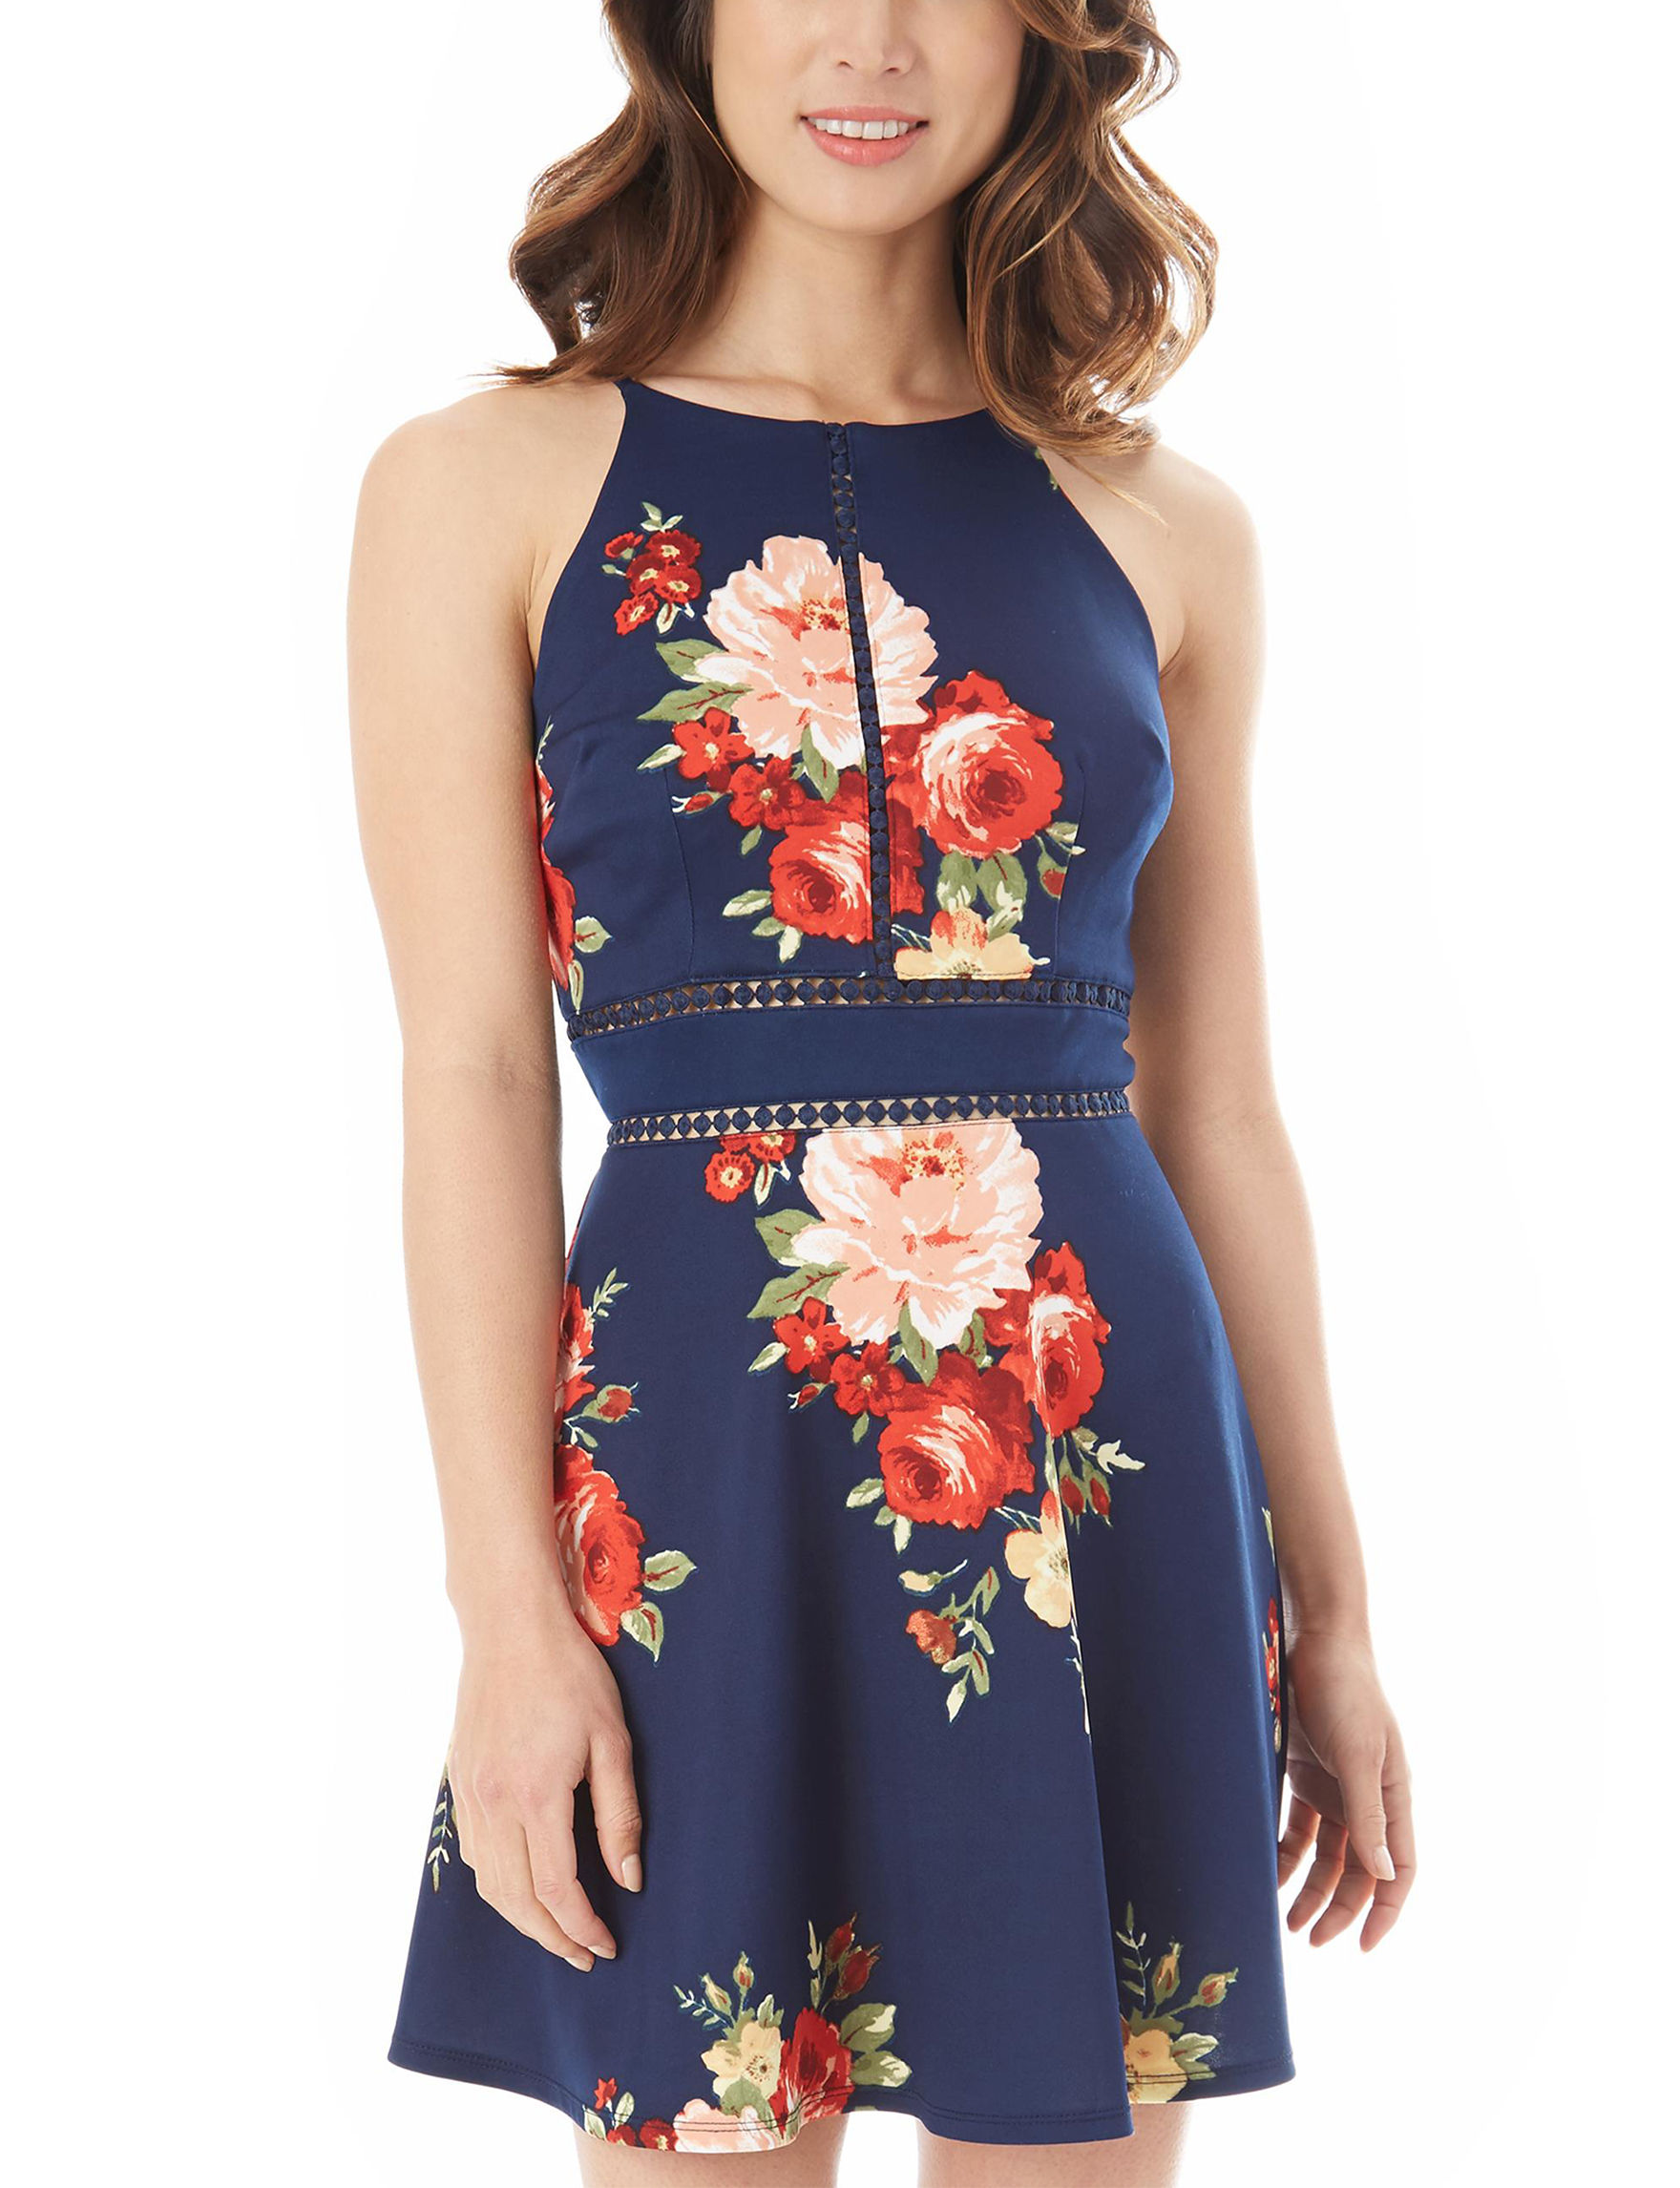 A. Byer Navy Floral Cocktail & Party Everyday & Casual Fit & Flare Dresses Sundresses